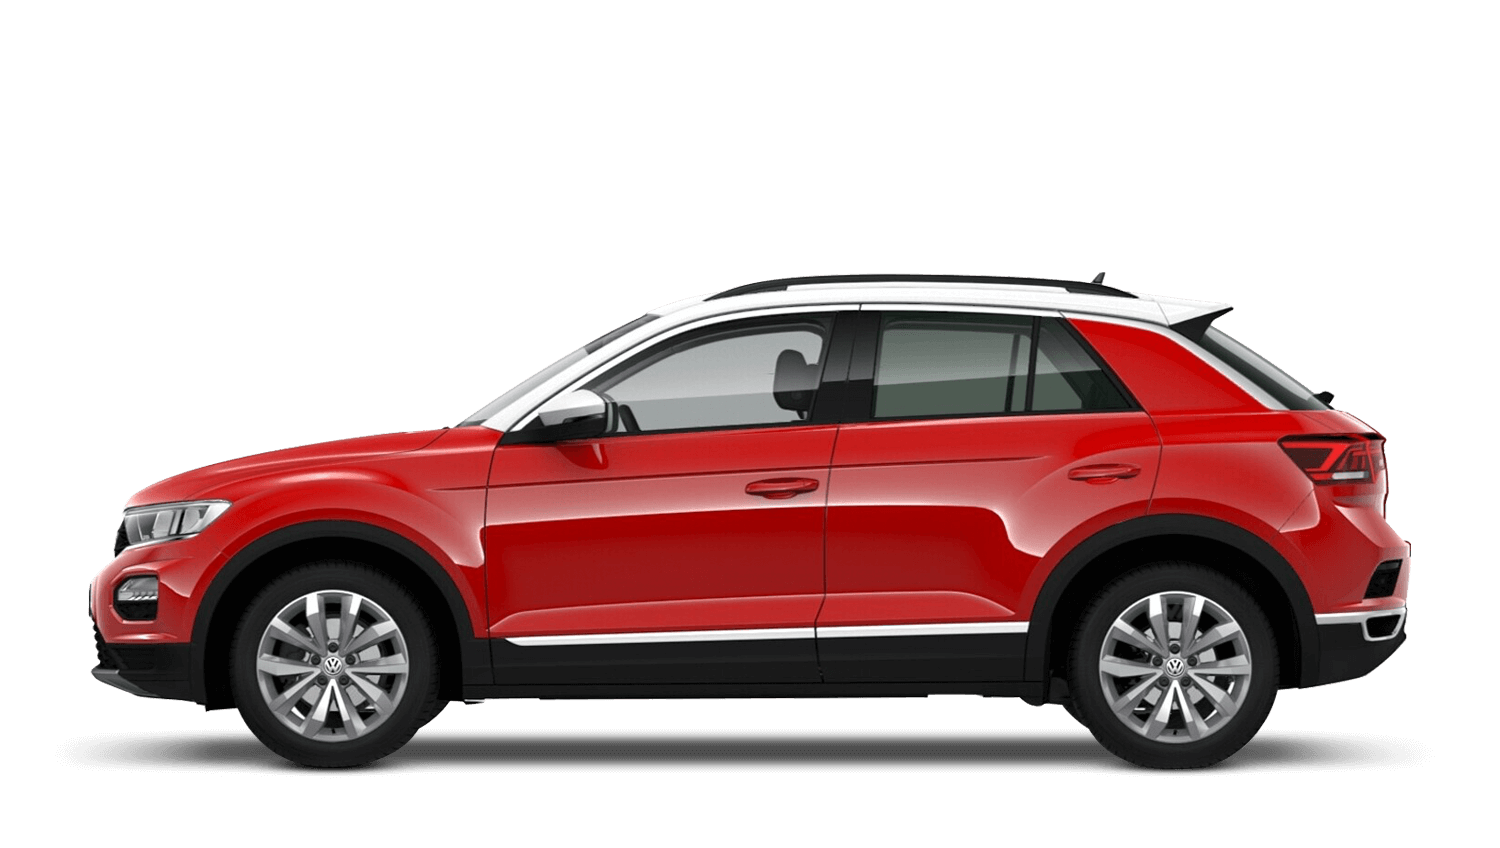 Flash Red with Pure White (Solid) Volkswagen T Roc